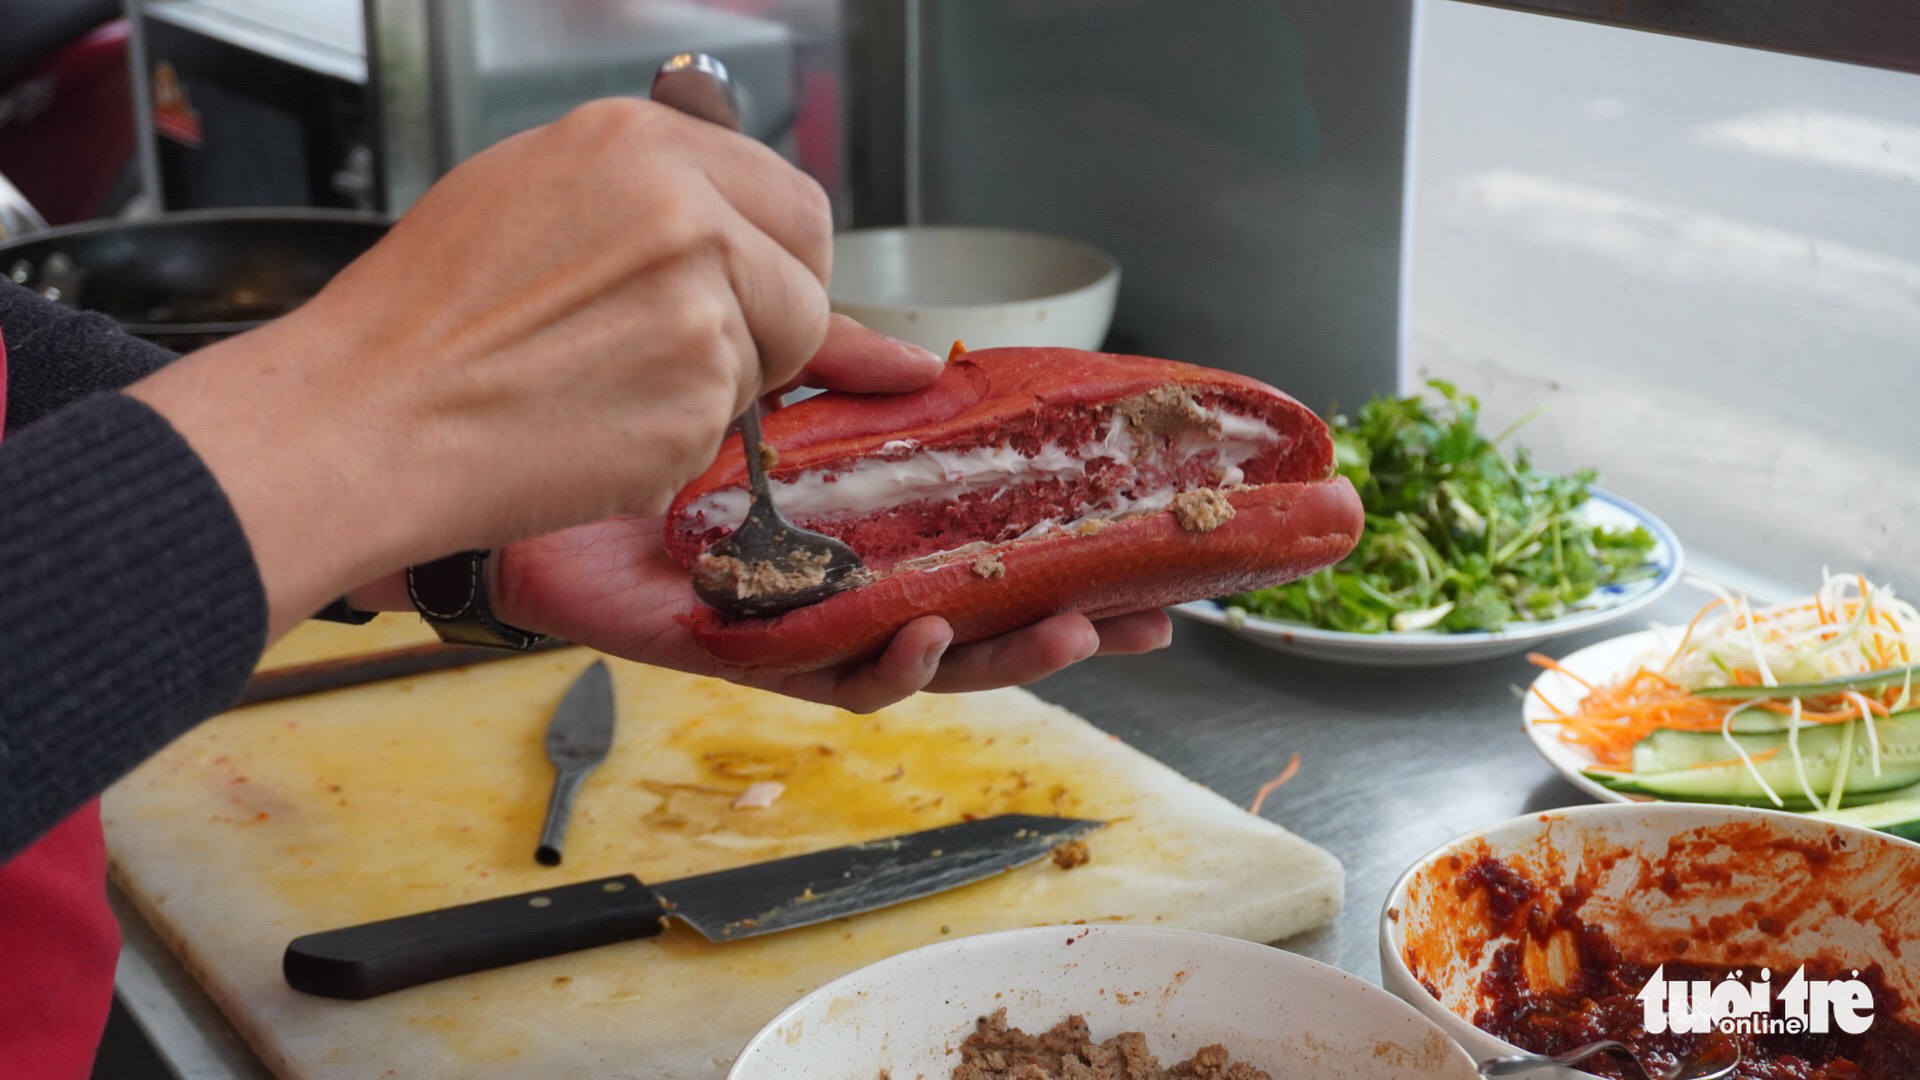 A banh mi is being stuffed with various fillings at Banh mi yeu nuoc in Da Nang City, Vietnam. Photo: Doan Nhan / Tuoi Tre